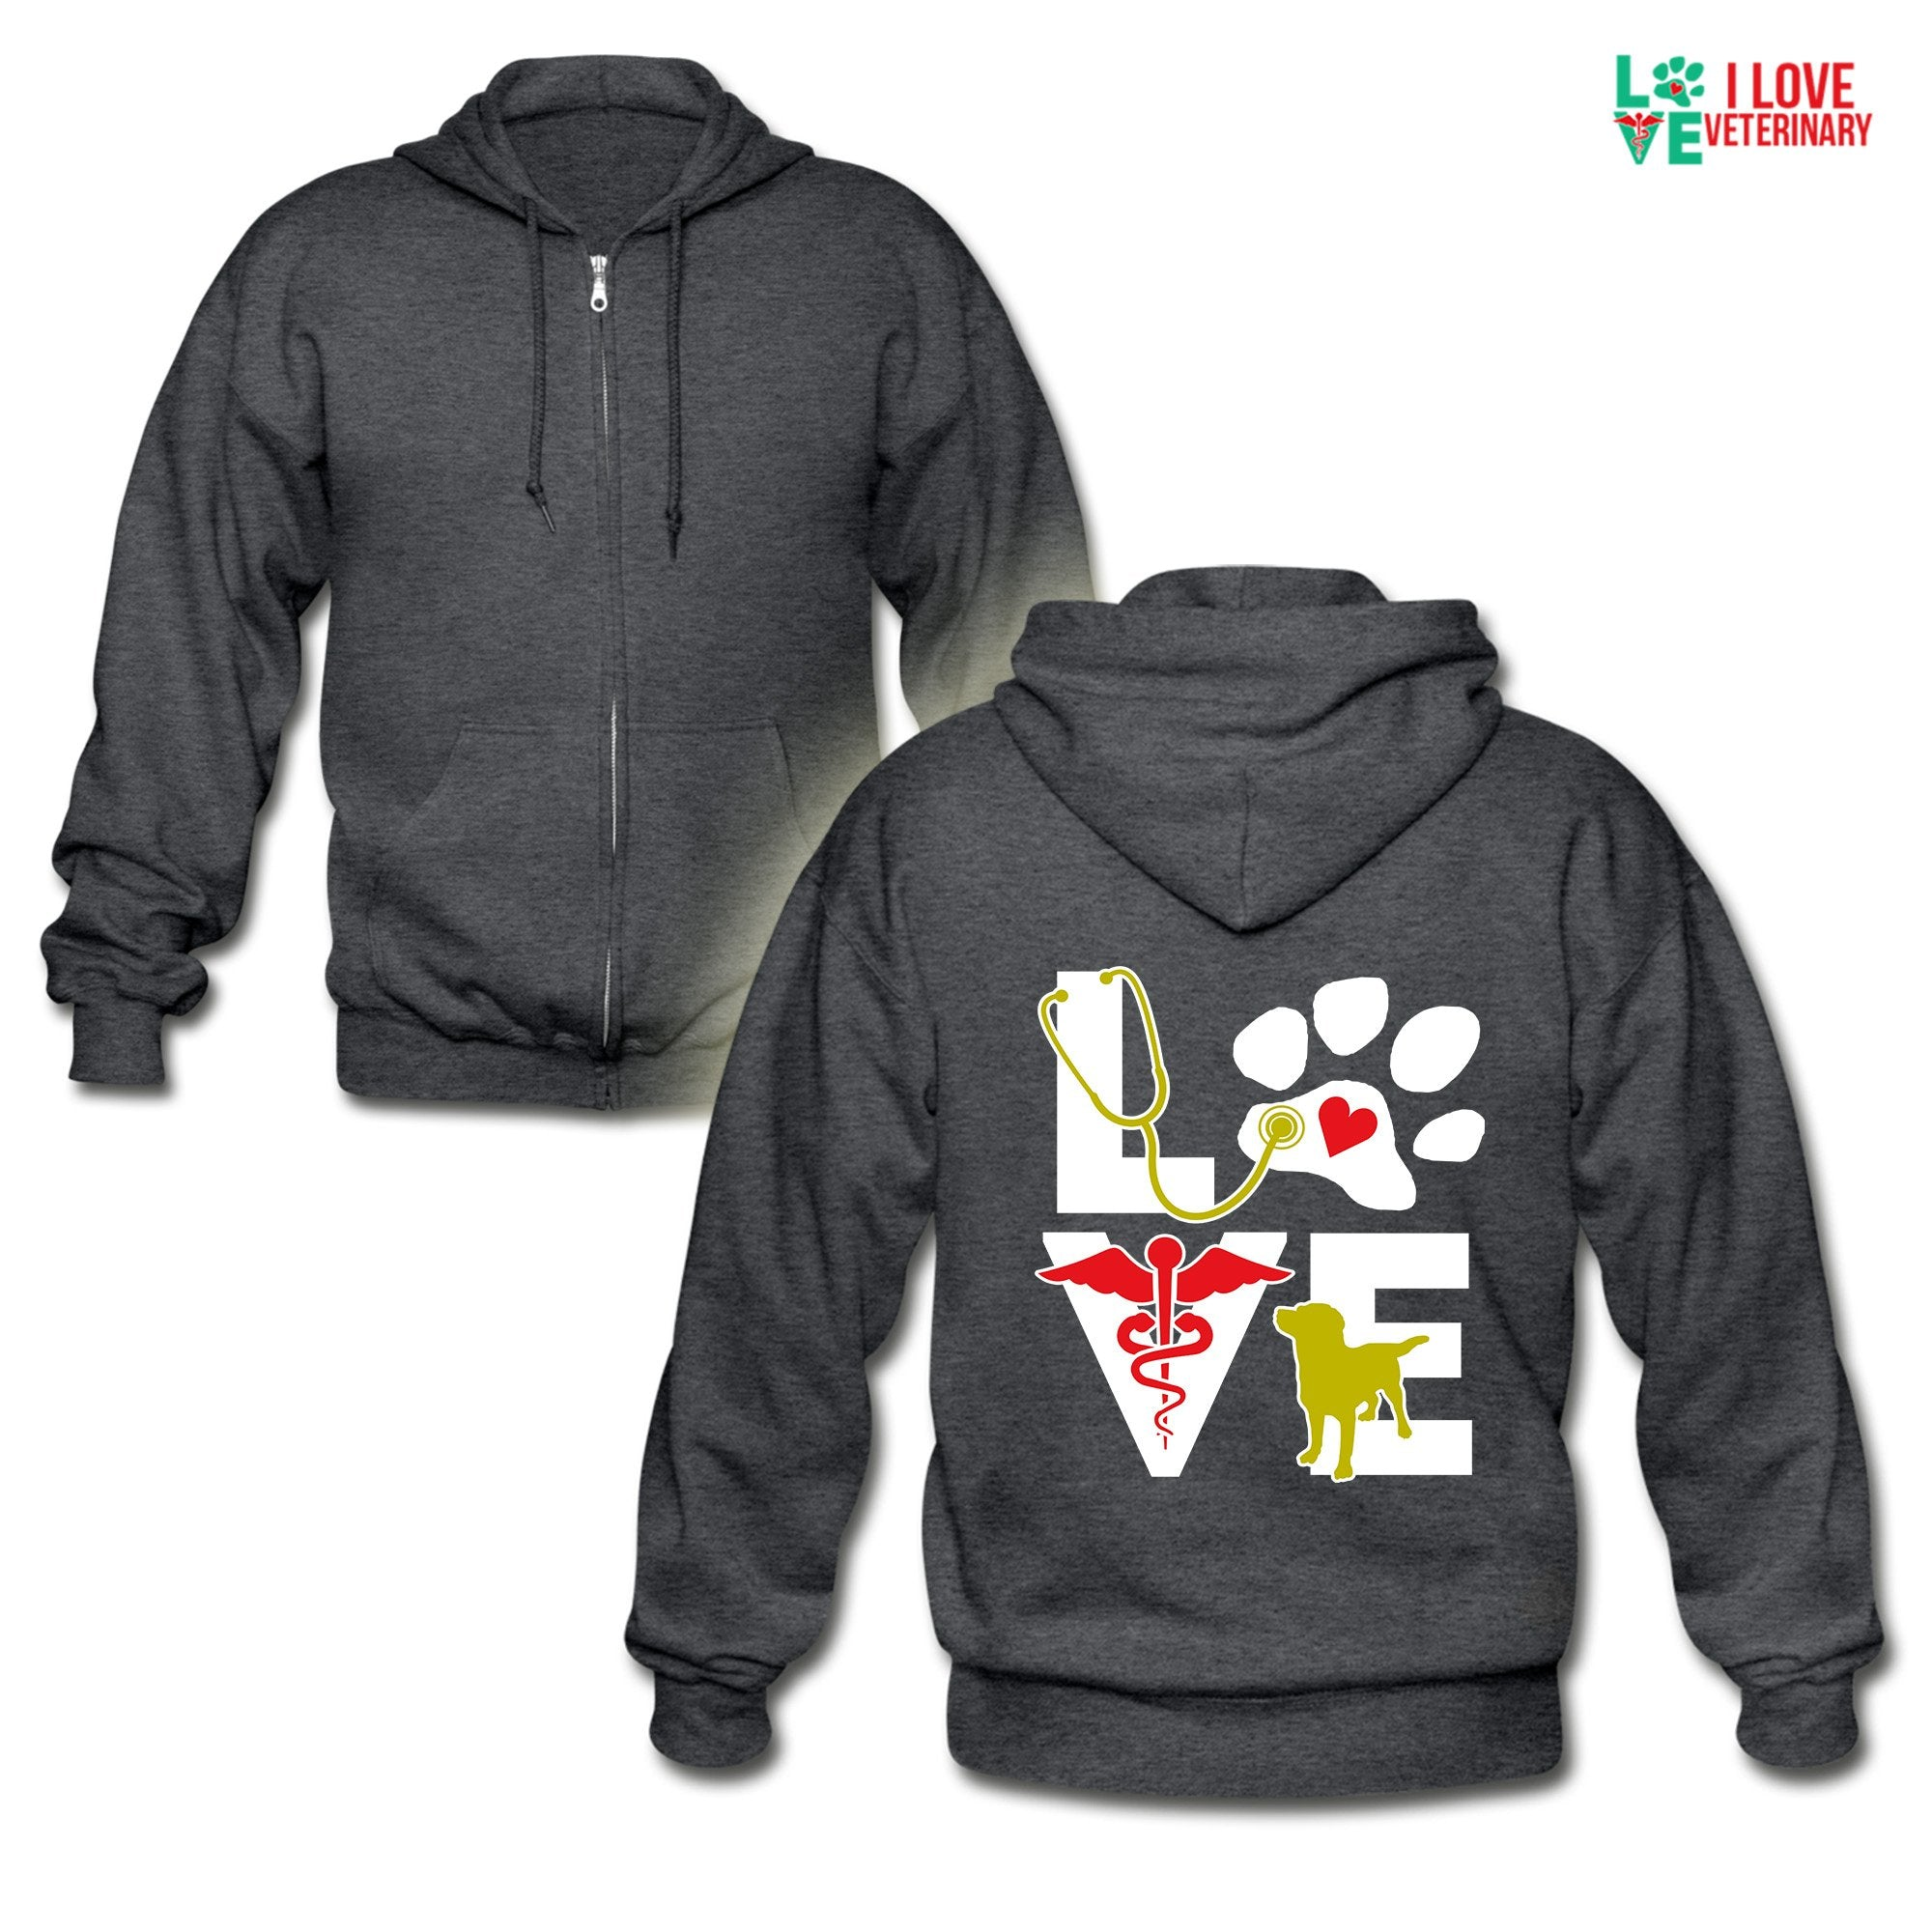 Veterinary - Love dog Unisex Zip Hoodie-Gildan Heavy Blend Adult Zip Hoodie-I love Veterinary